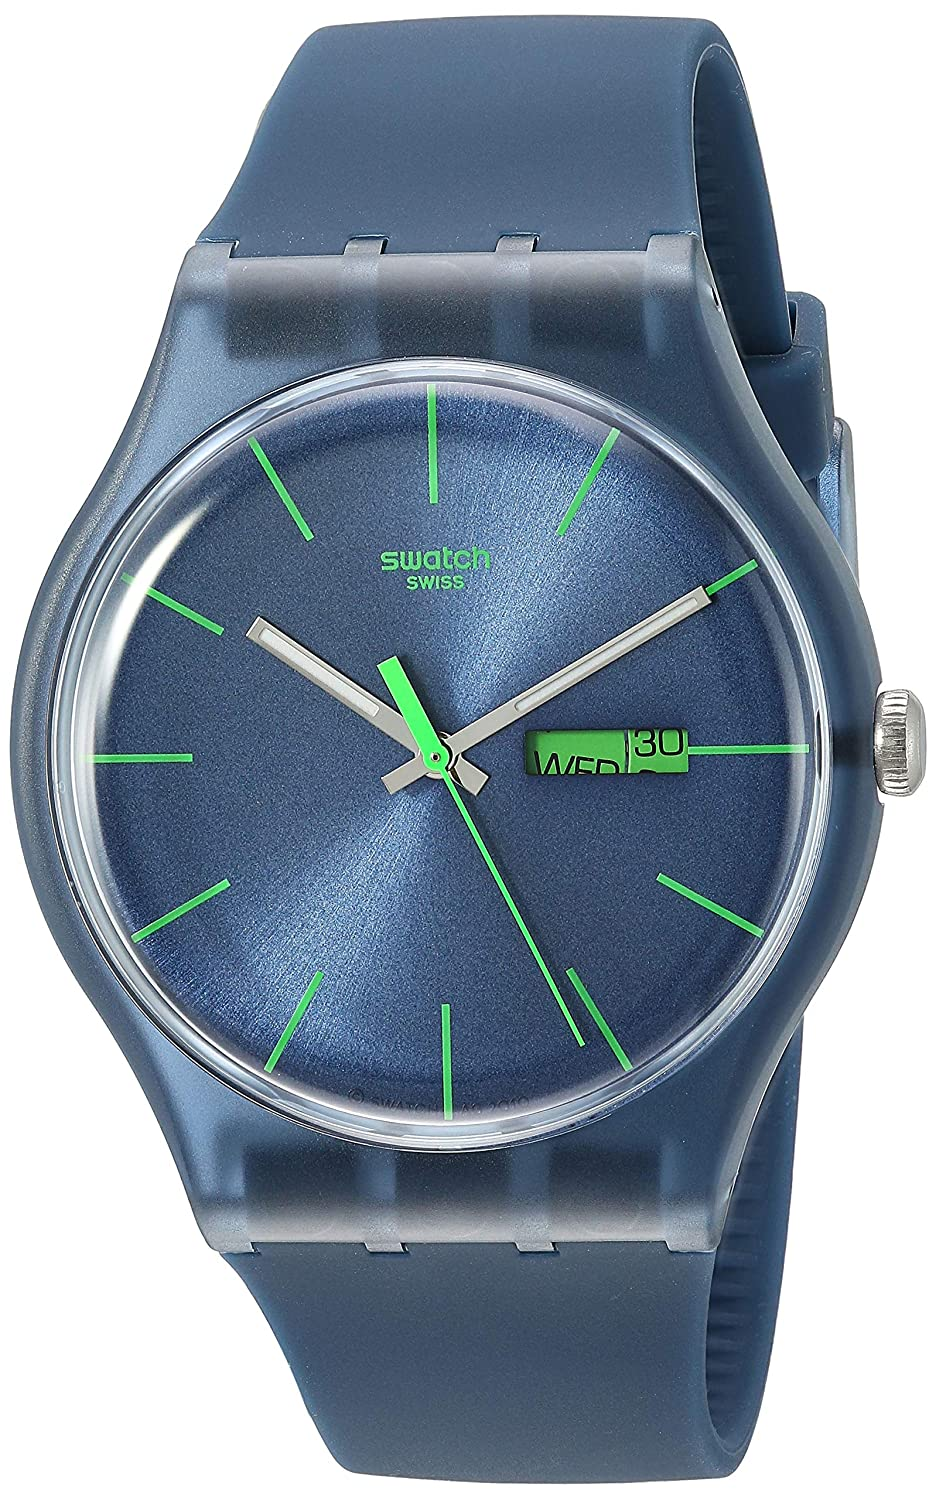 19213e928642 Buy Swatch Analog Blue Dial Men s Watch - SUON700 Online at Low Prices in  India - Amazon.in